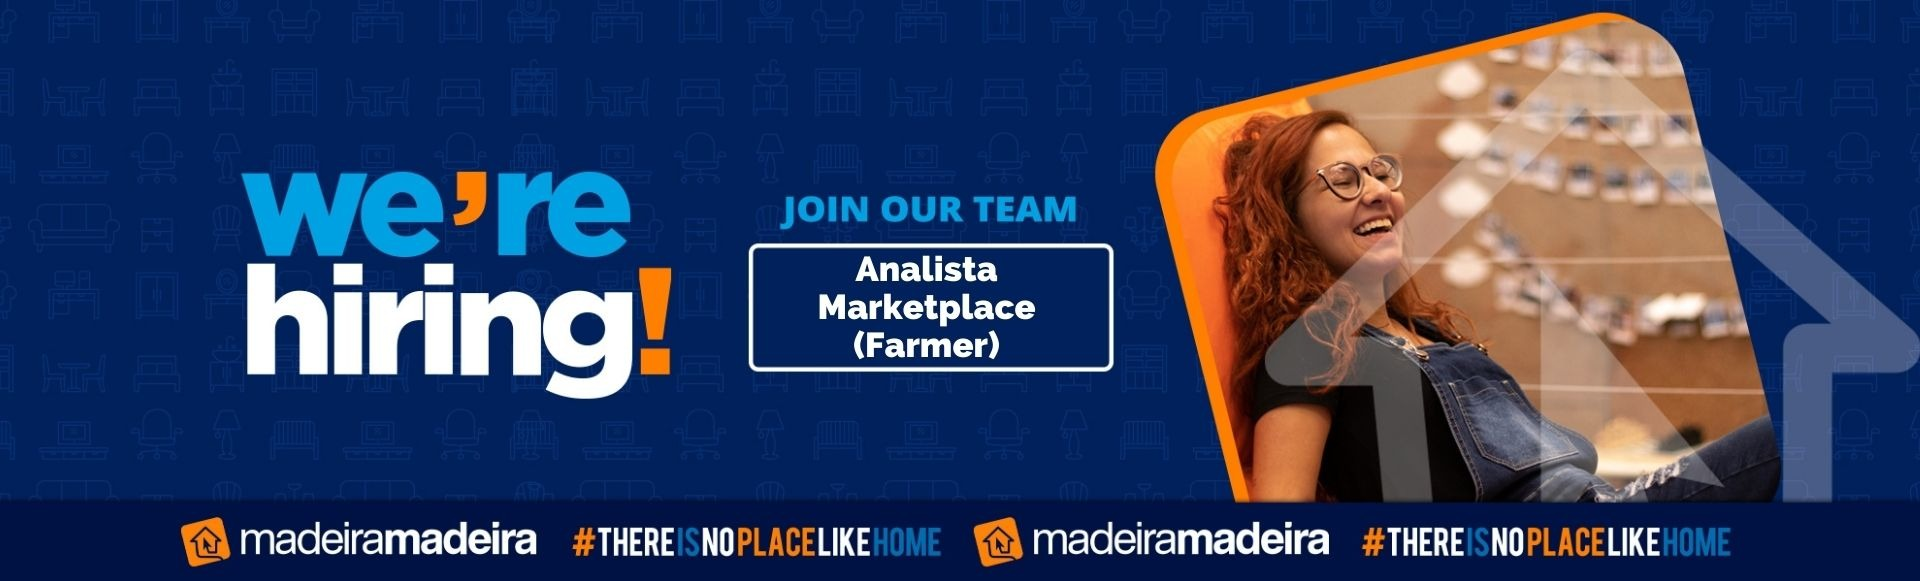 Analista Marketplace (Farmer)